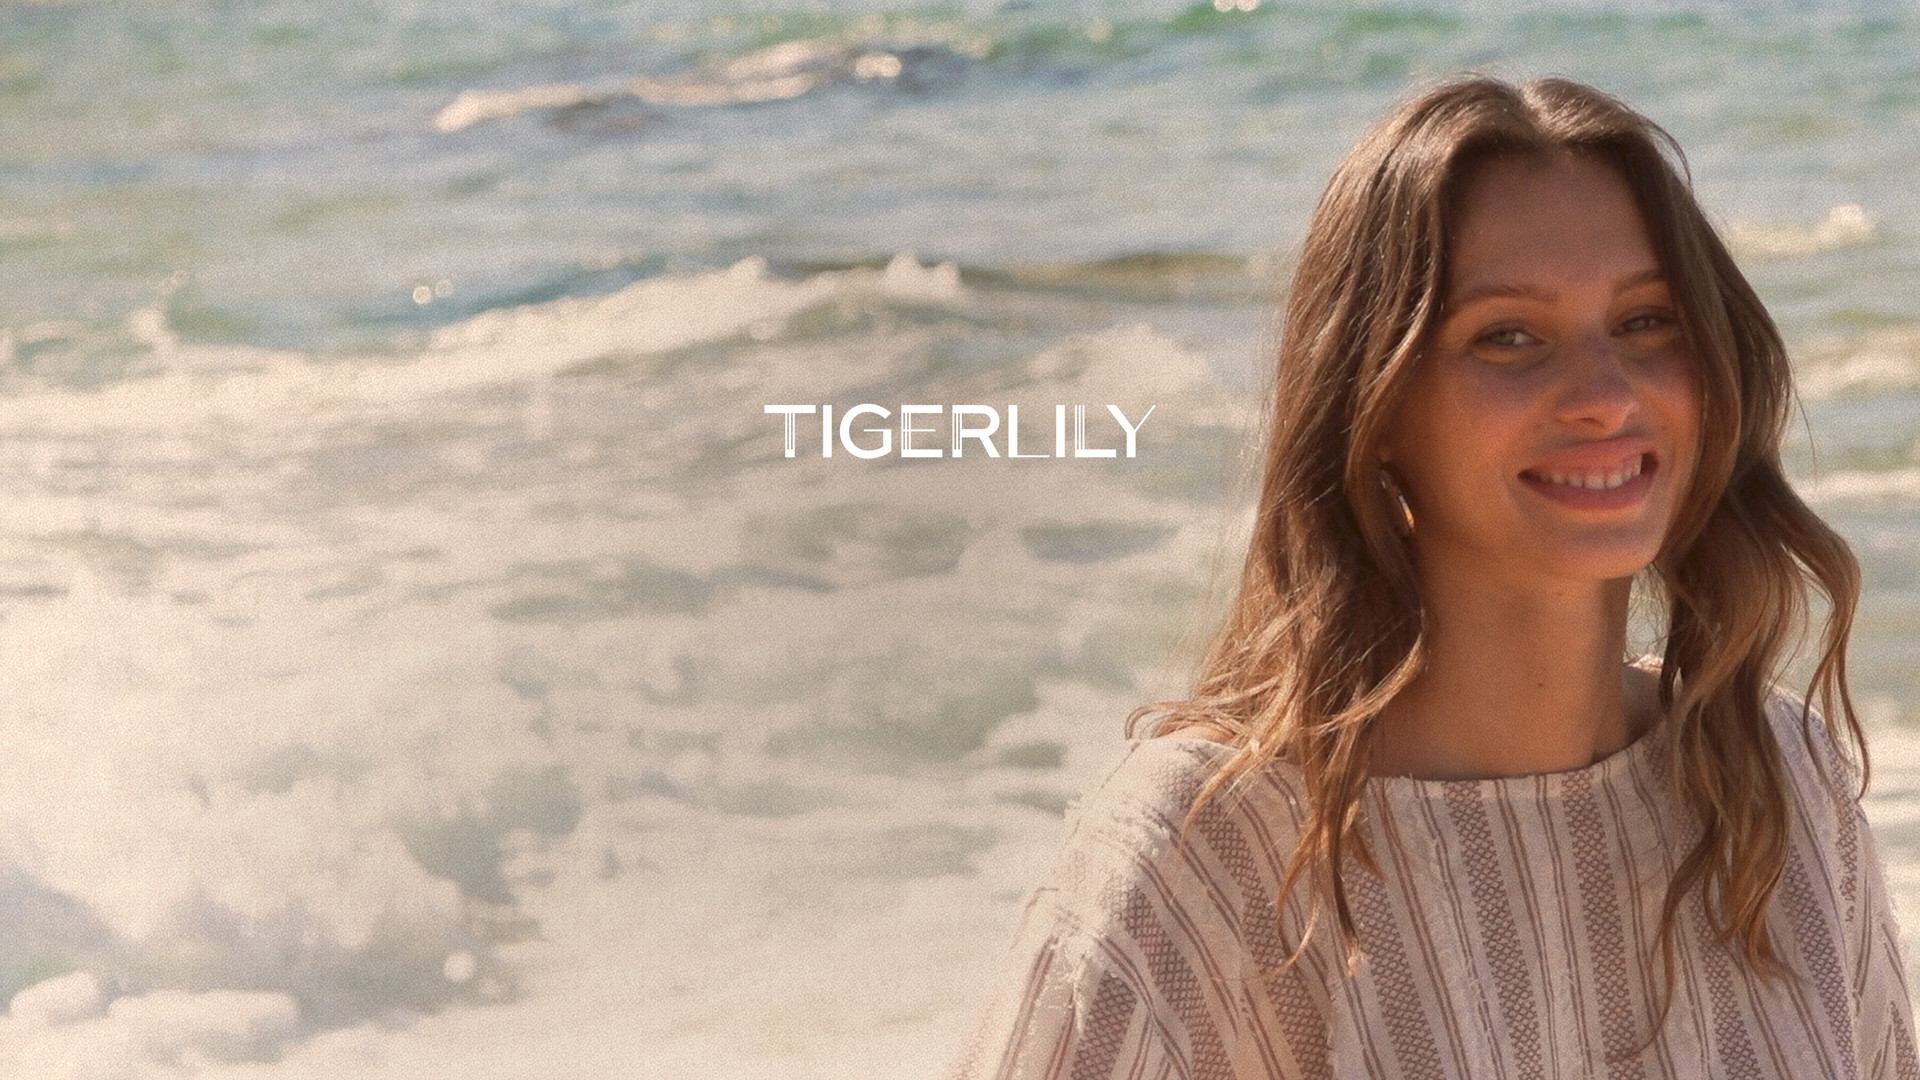 TIGERLILY SUMMER '19 (HD) BY LOCAL N3WS VIDEO PRODUCTIONS